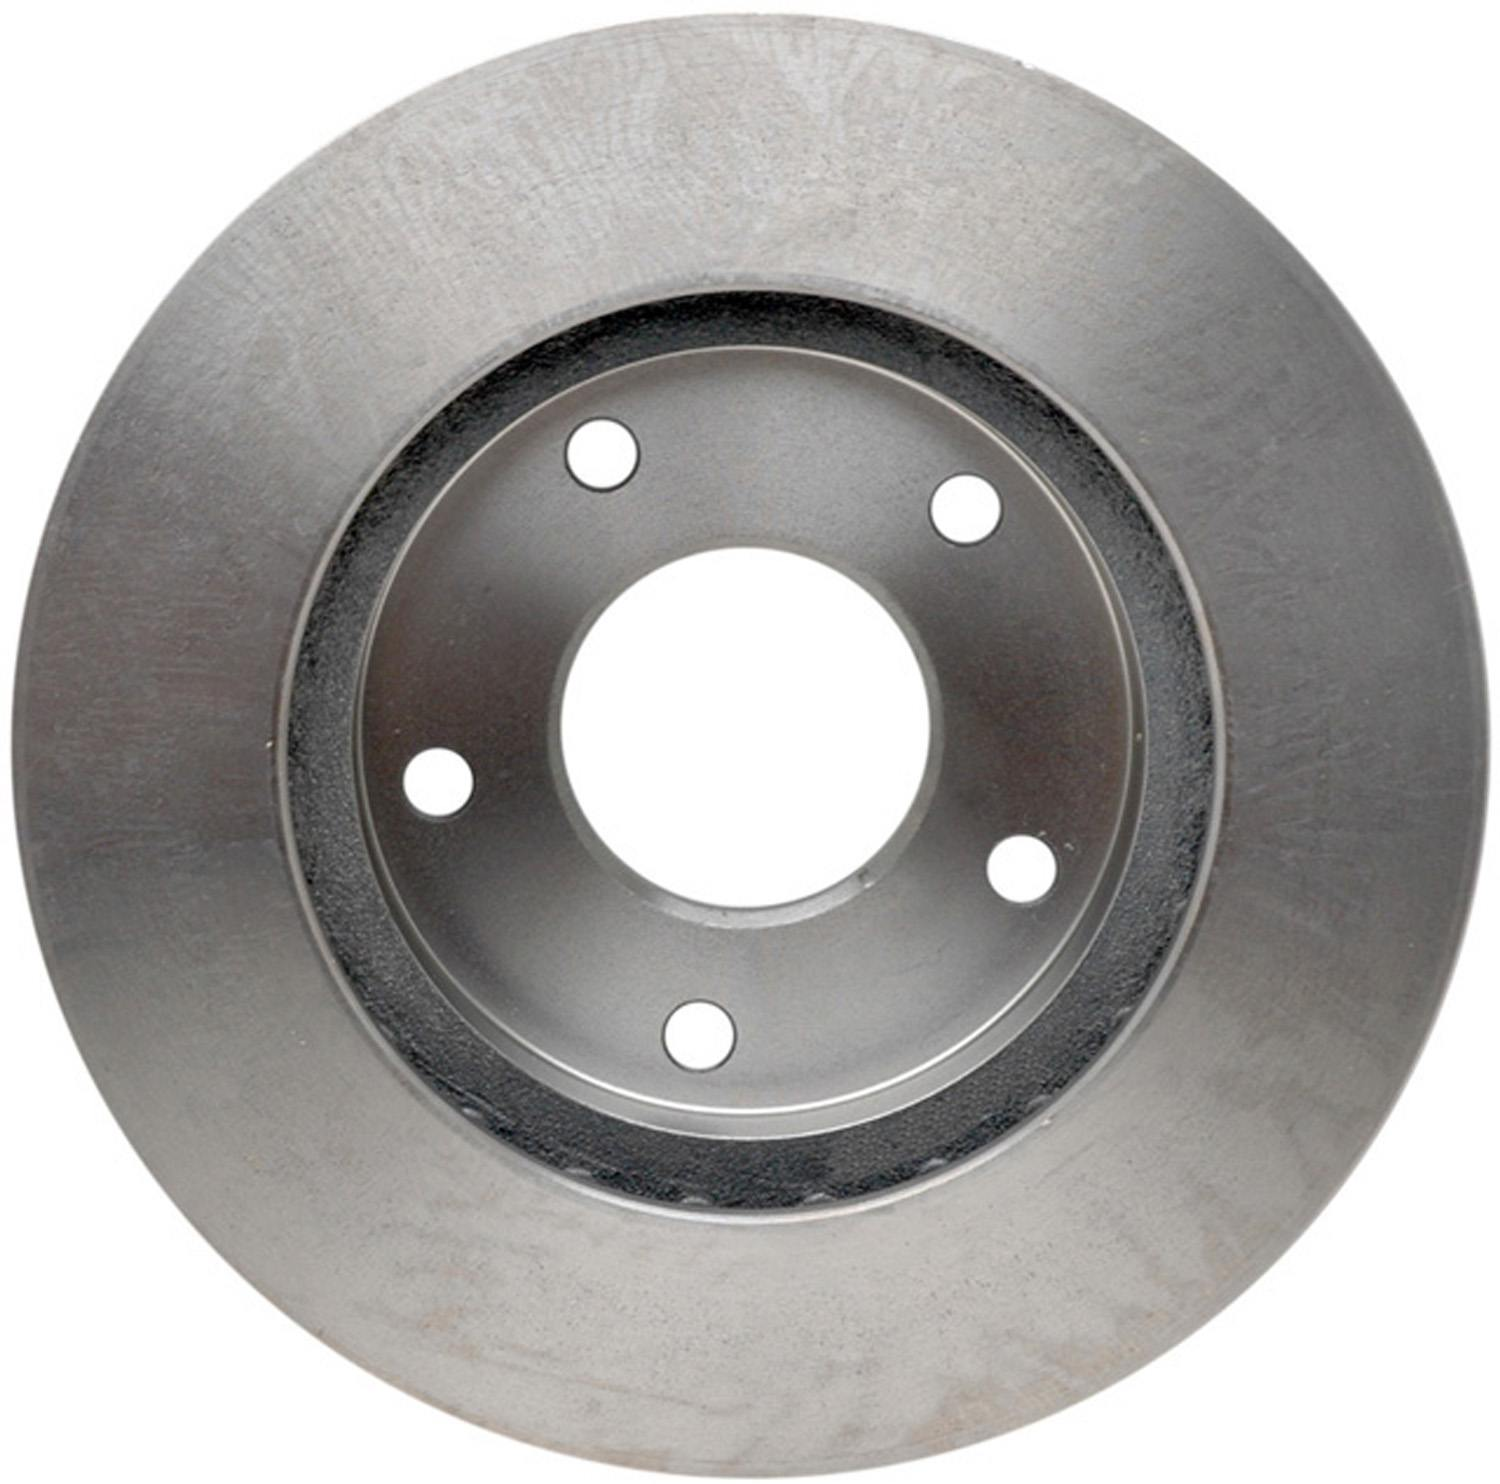 ACDELCO PROFESSIONAL BRAKES - Disc Brake Rotor - ADU 18A862